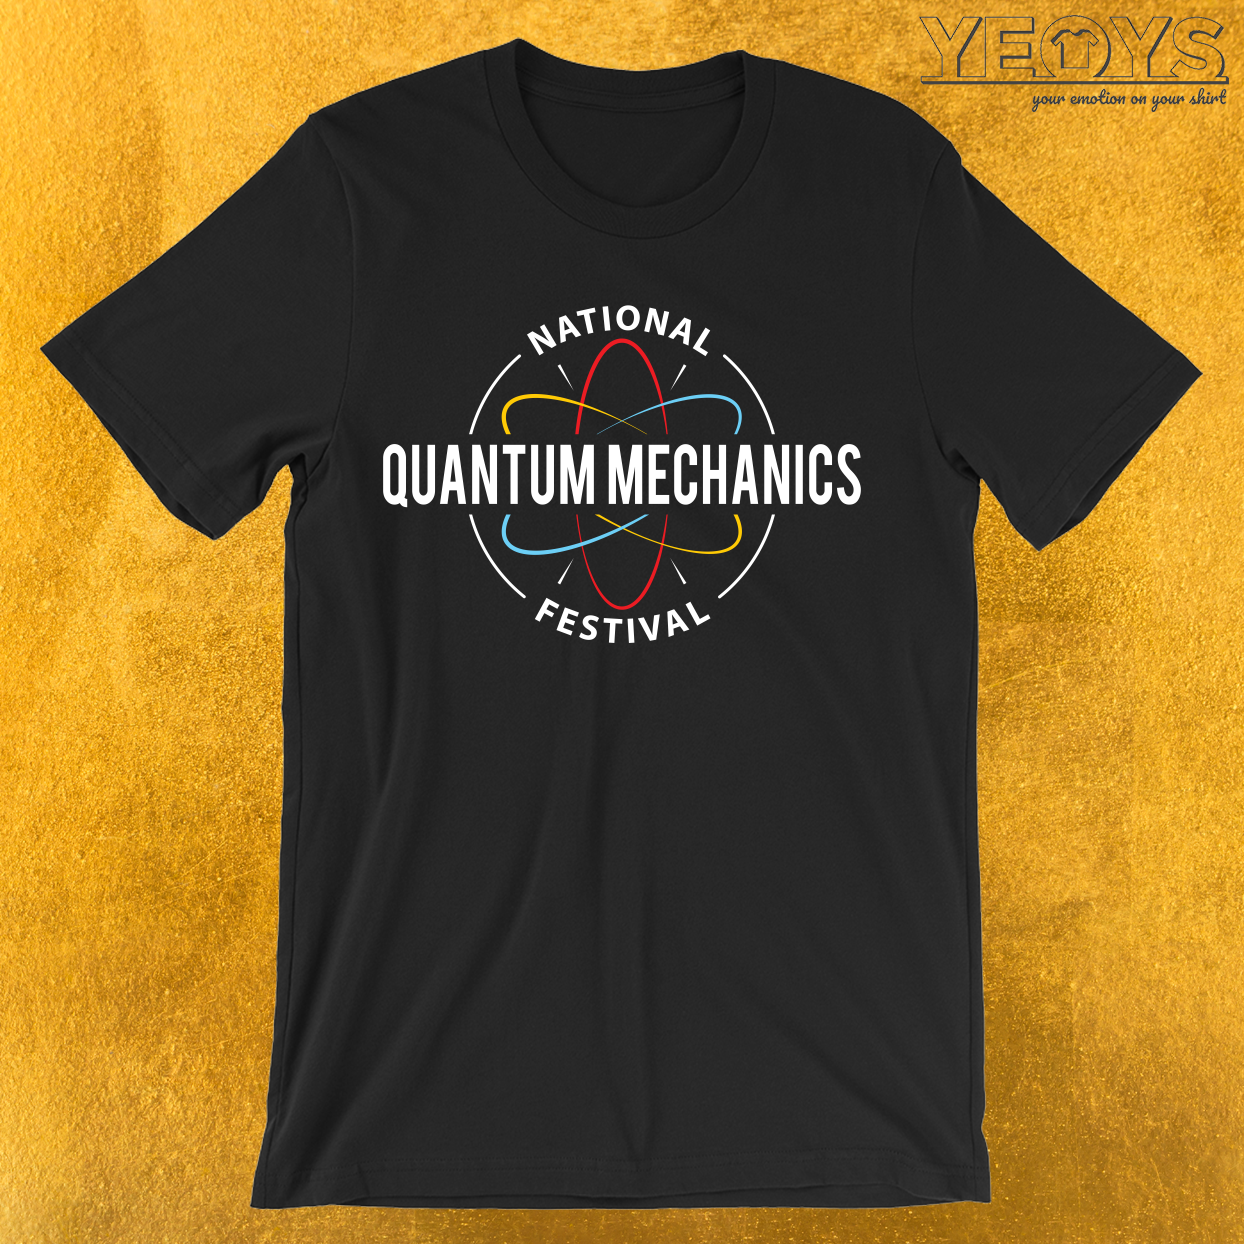 National Quantum Mechanics Festival T-Shirt